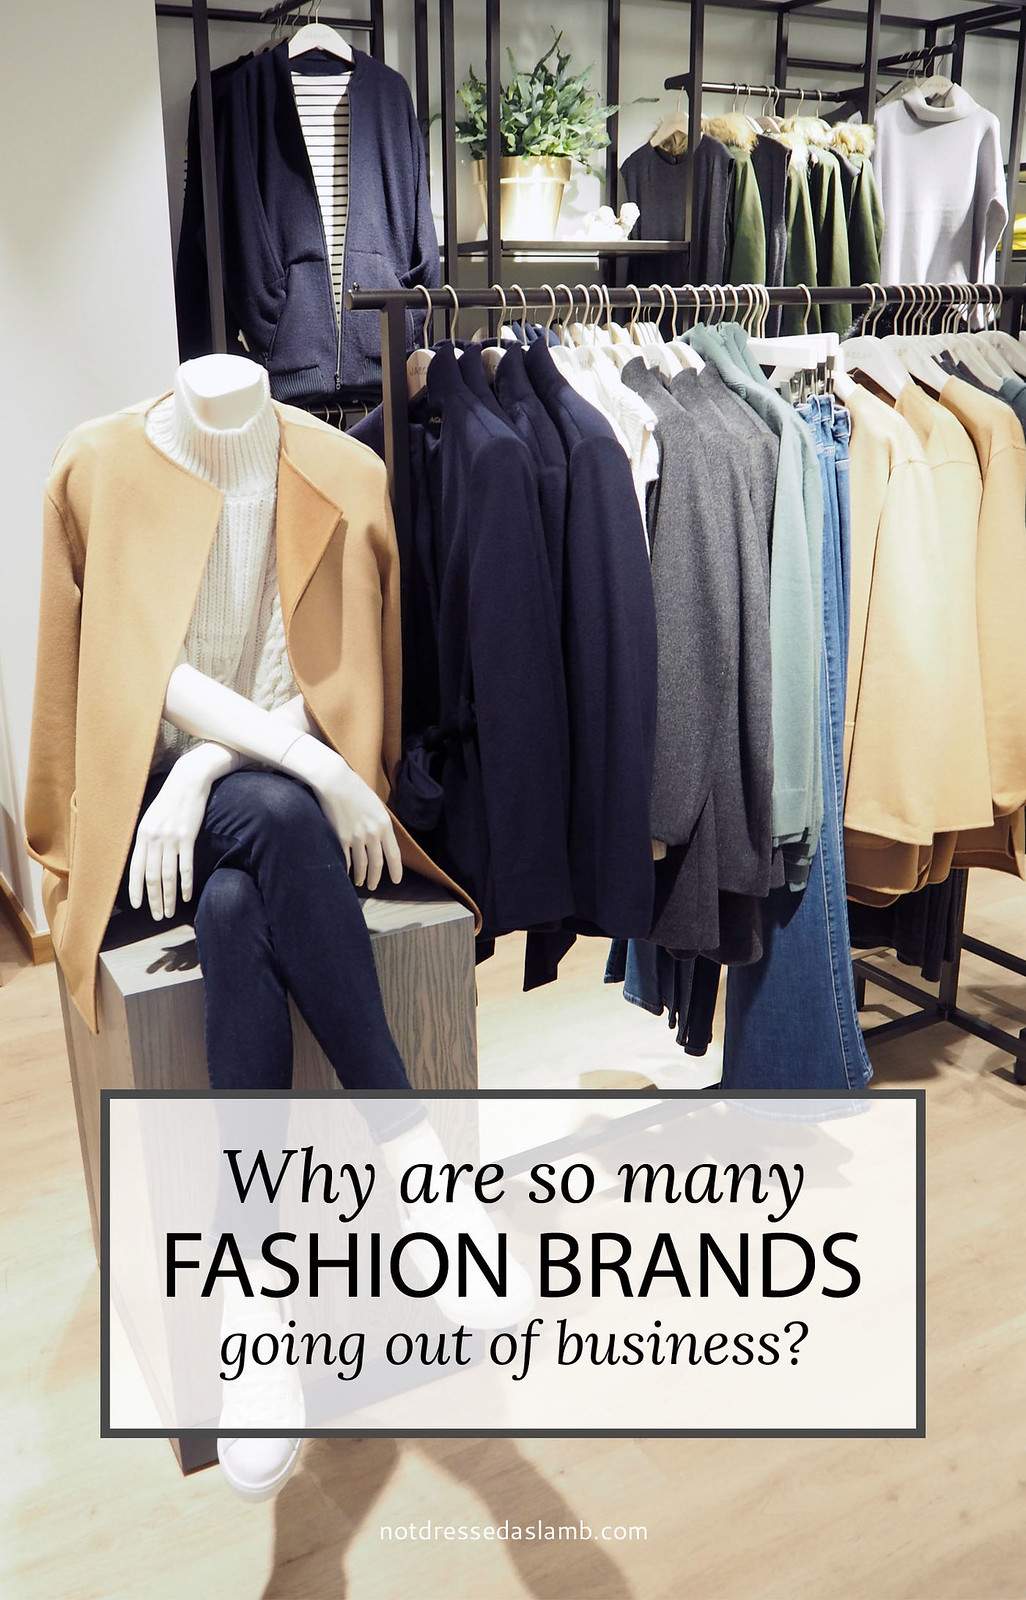 Why Are So Many Fashion Brands Going Into Liquidation? Jaeger, Karen Millen, Ted & Muffy, Ben Sherman...